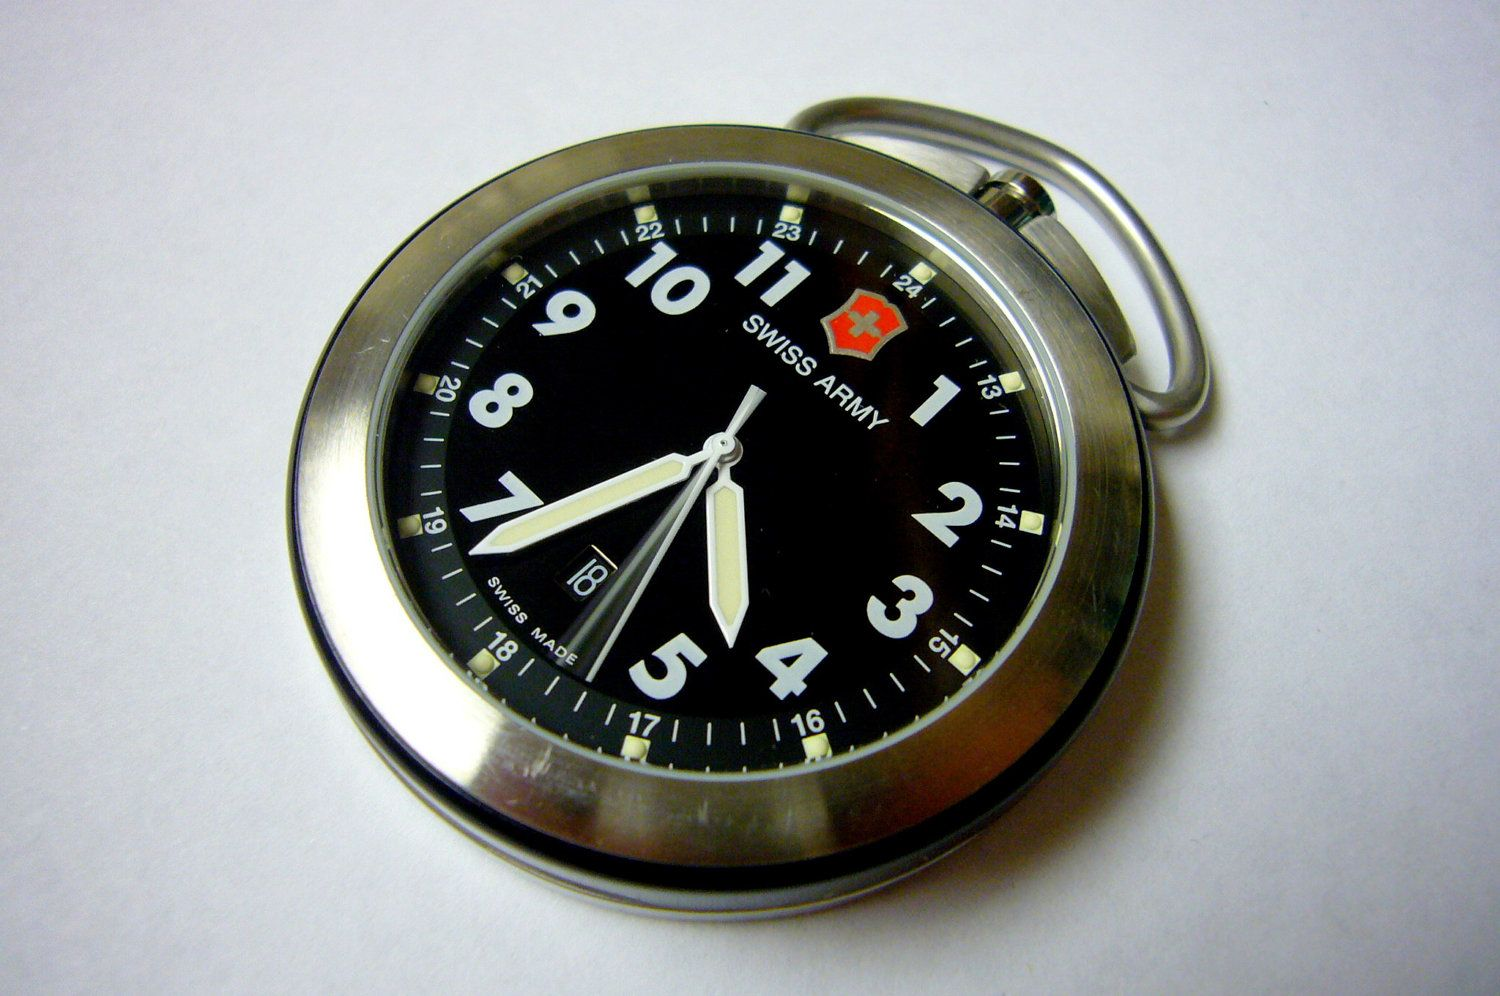 Swiss Army Pocket Watch World Famous Watches Brands In Washington Modern Pocket Watch Watches Victorinox Watches